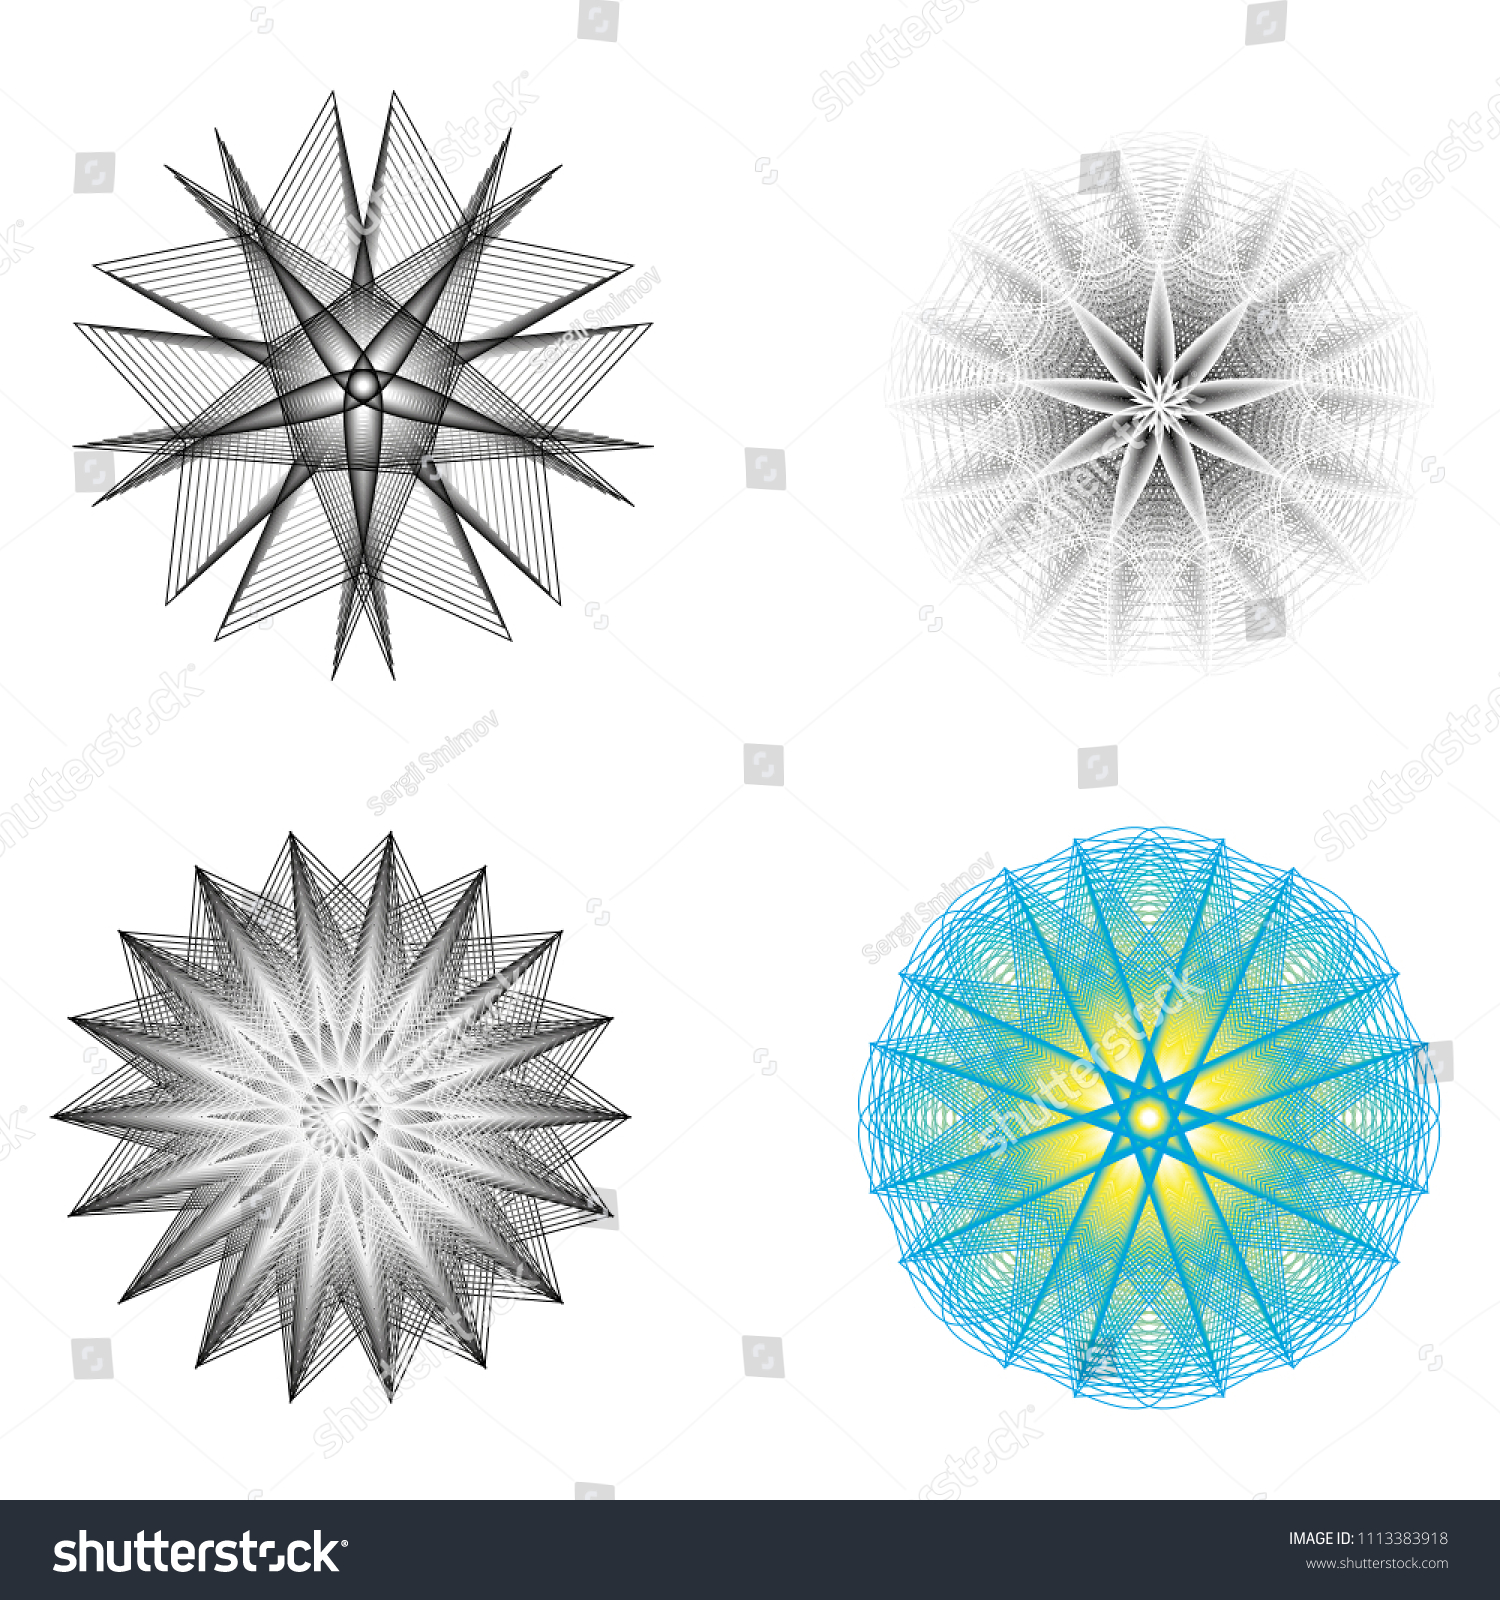 Geometry Minimalistic Artwork Poster With Simple Shape And Figure Abstract